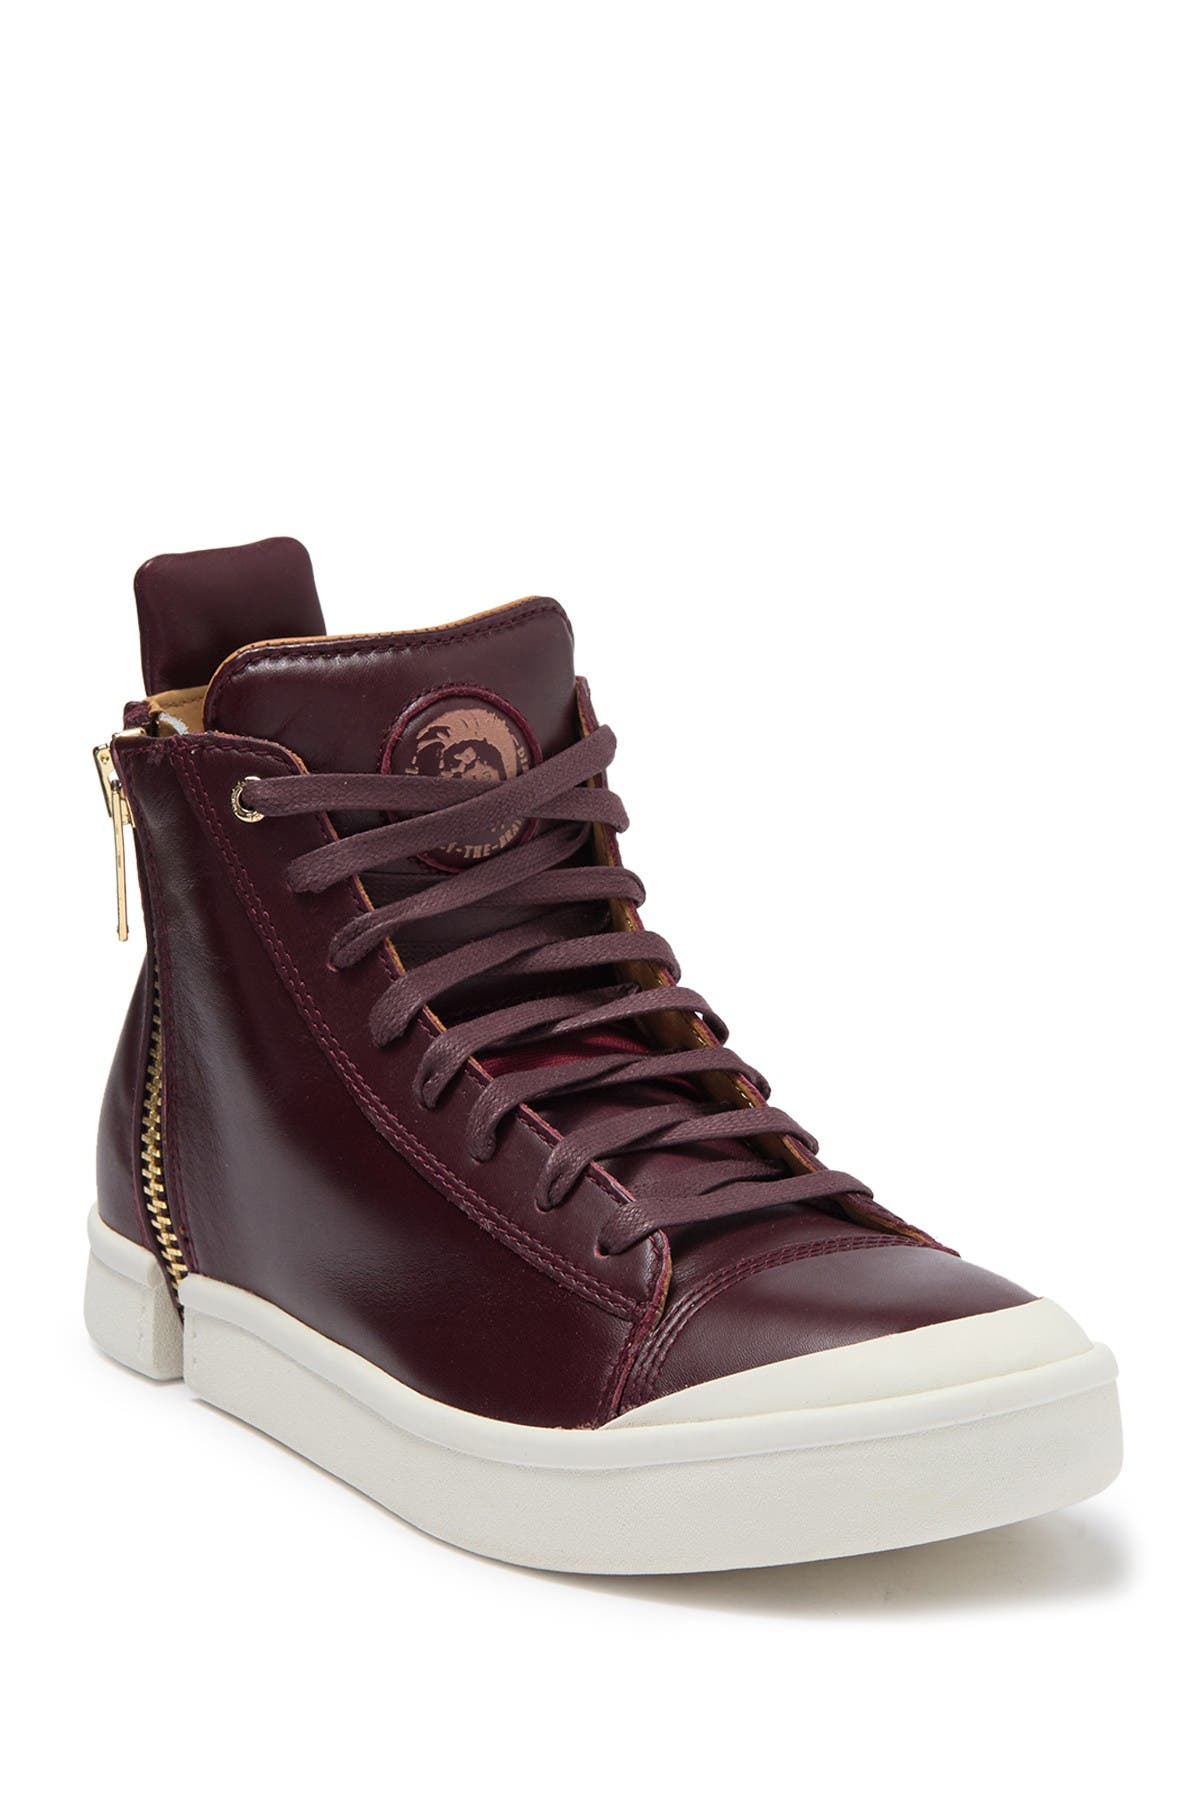 Nentish High Top Leather Sneaker